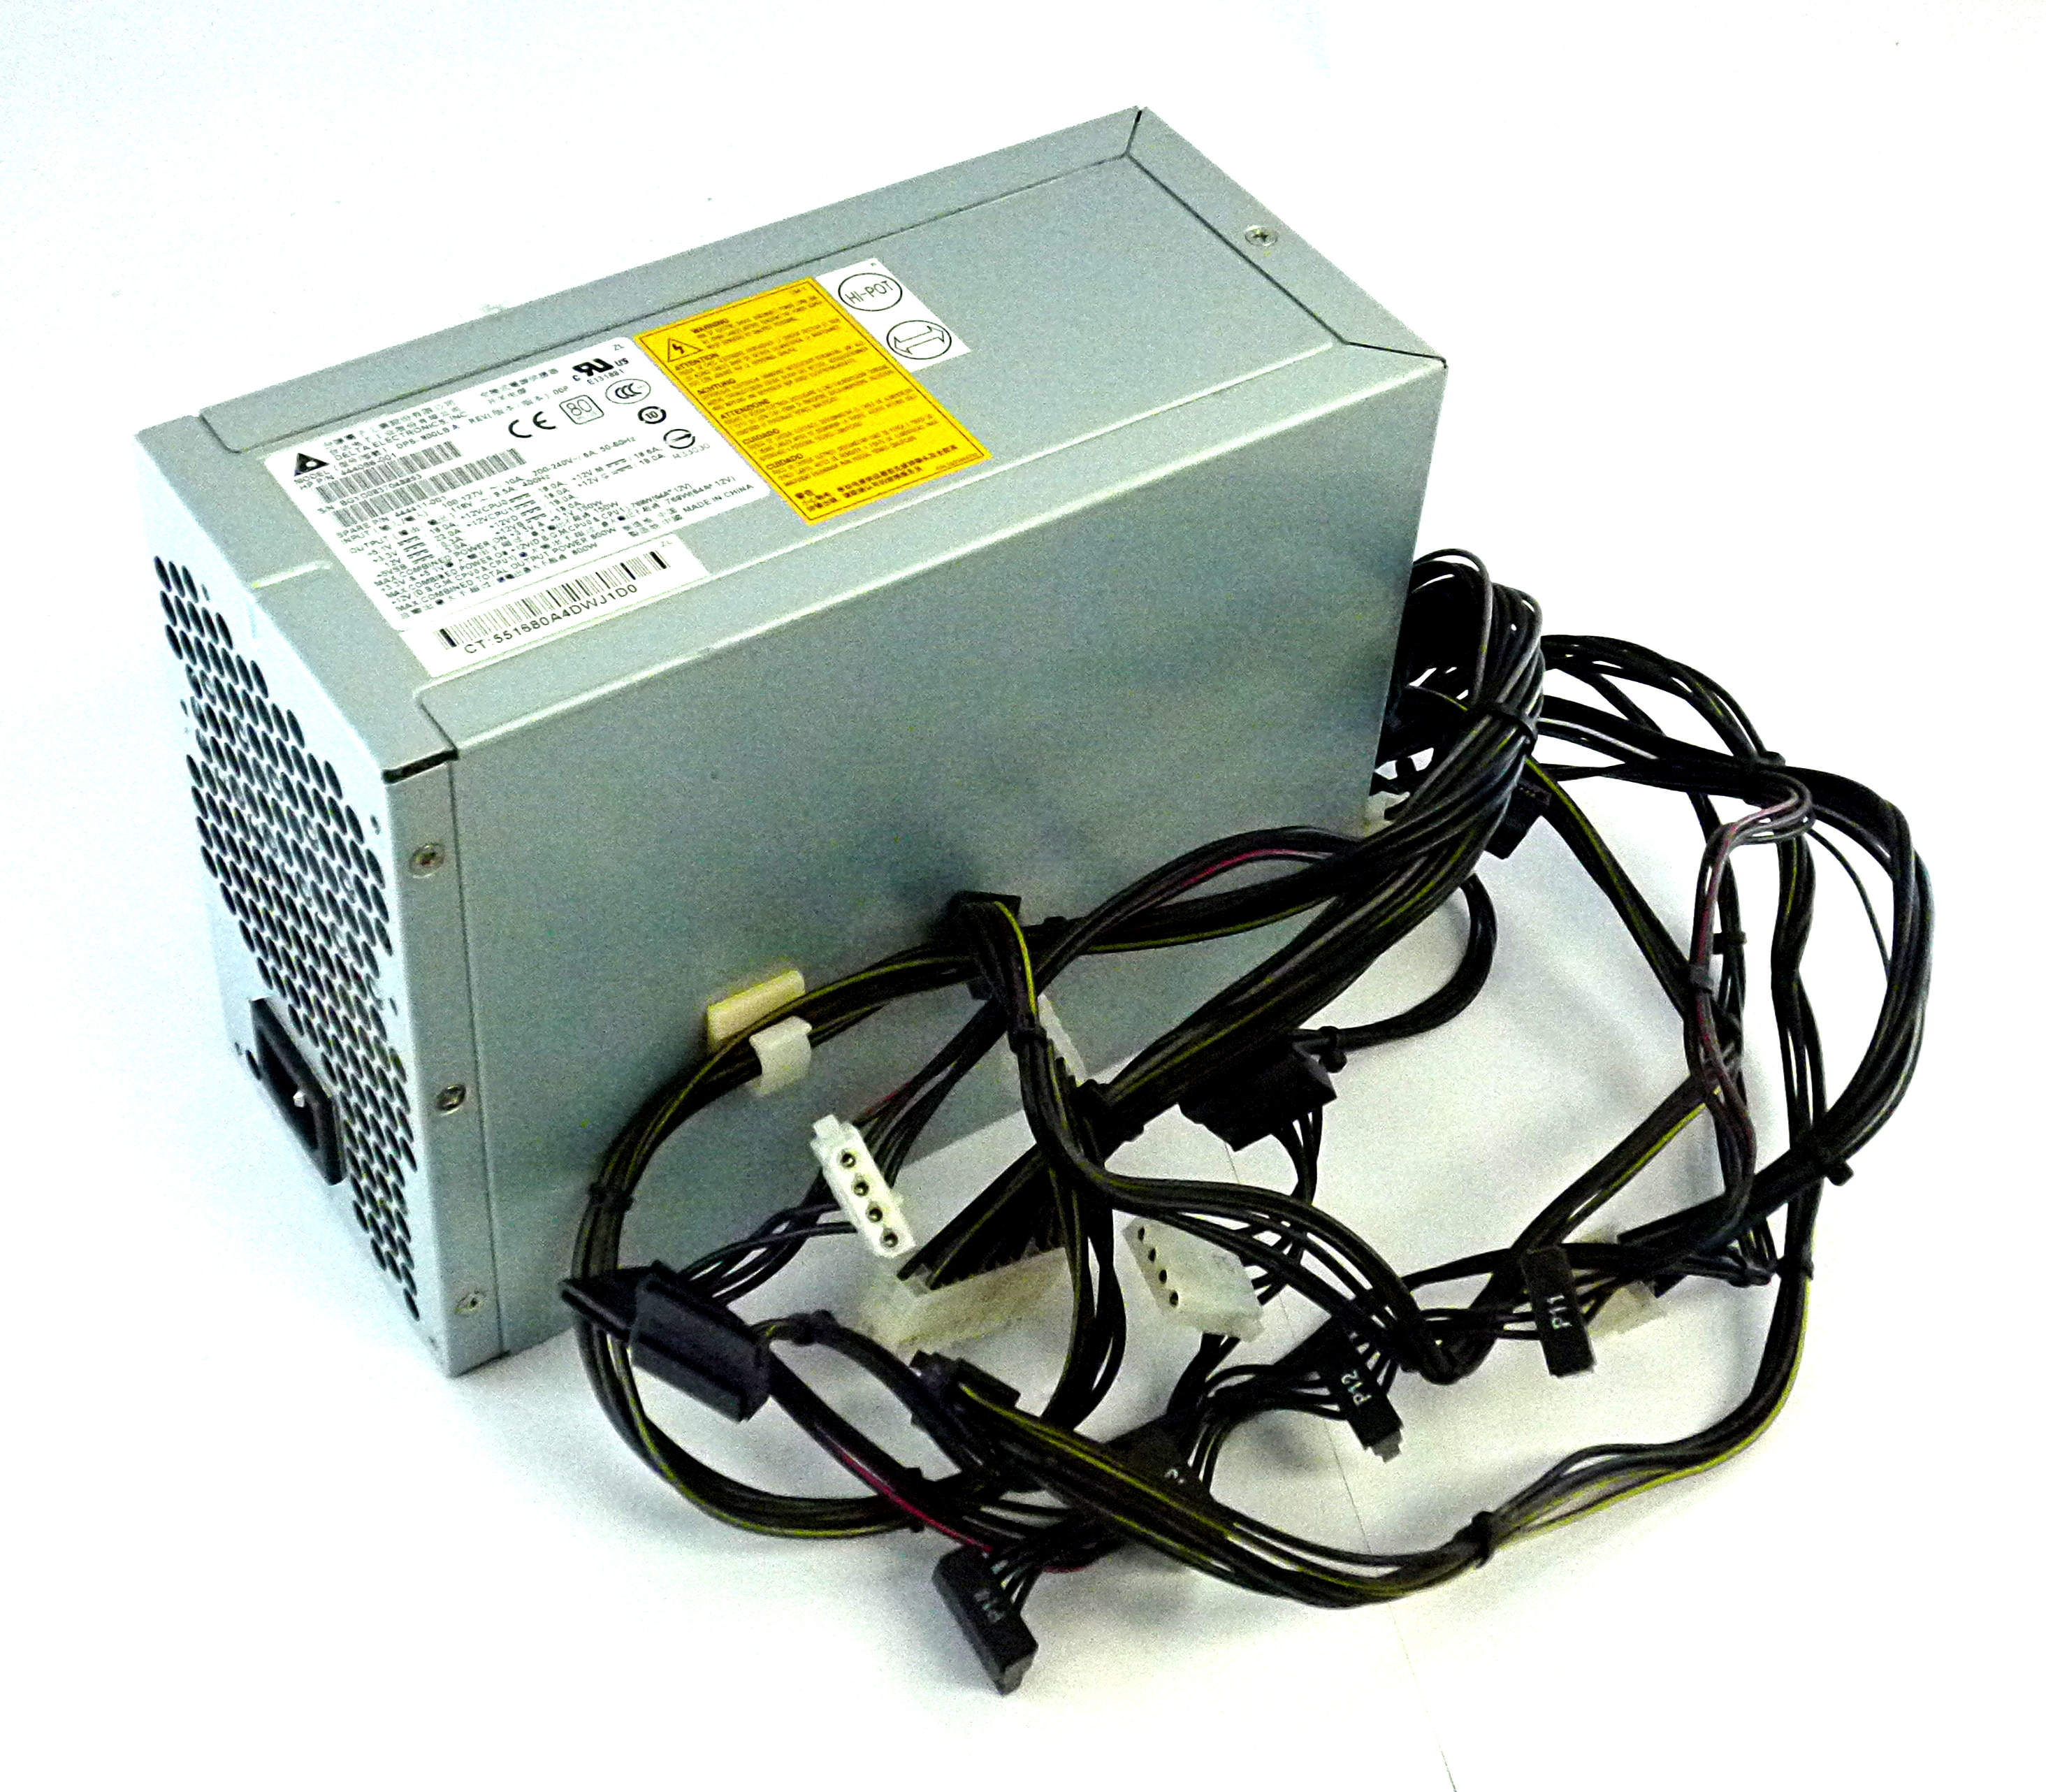 HP 444411-001 xw8600 Workstation 800W Power Supply 444096-001  DPS-800LB A